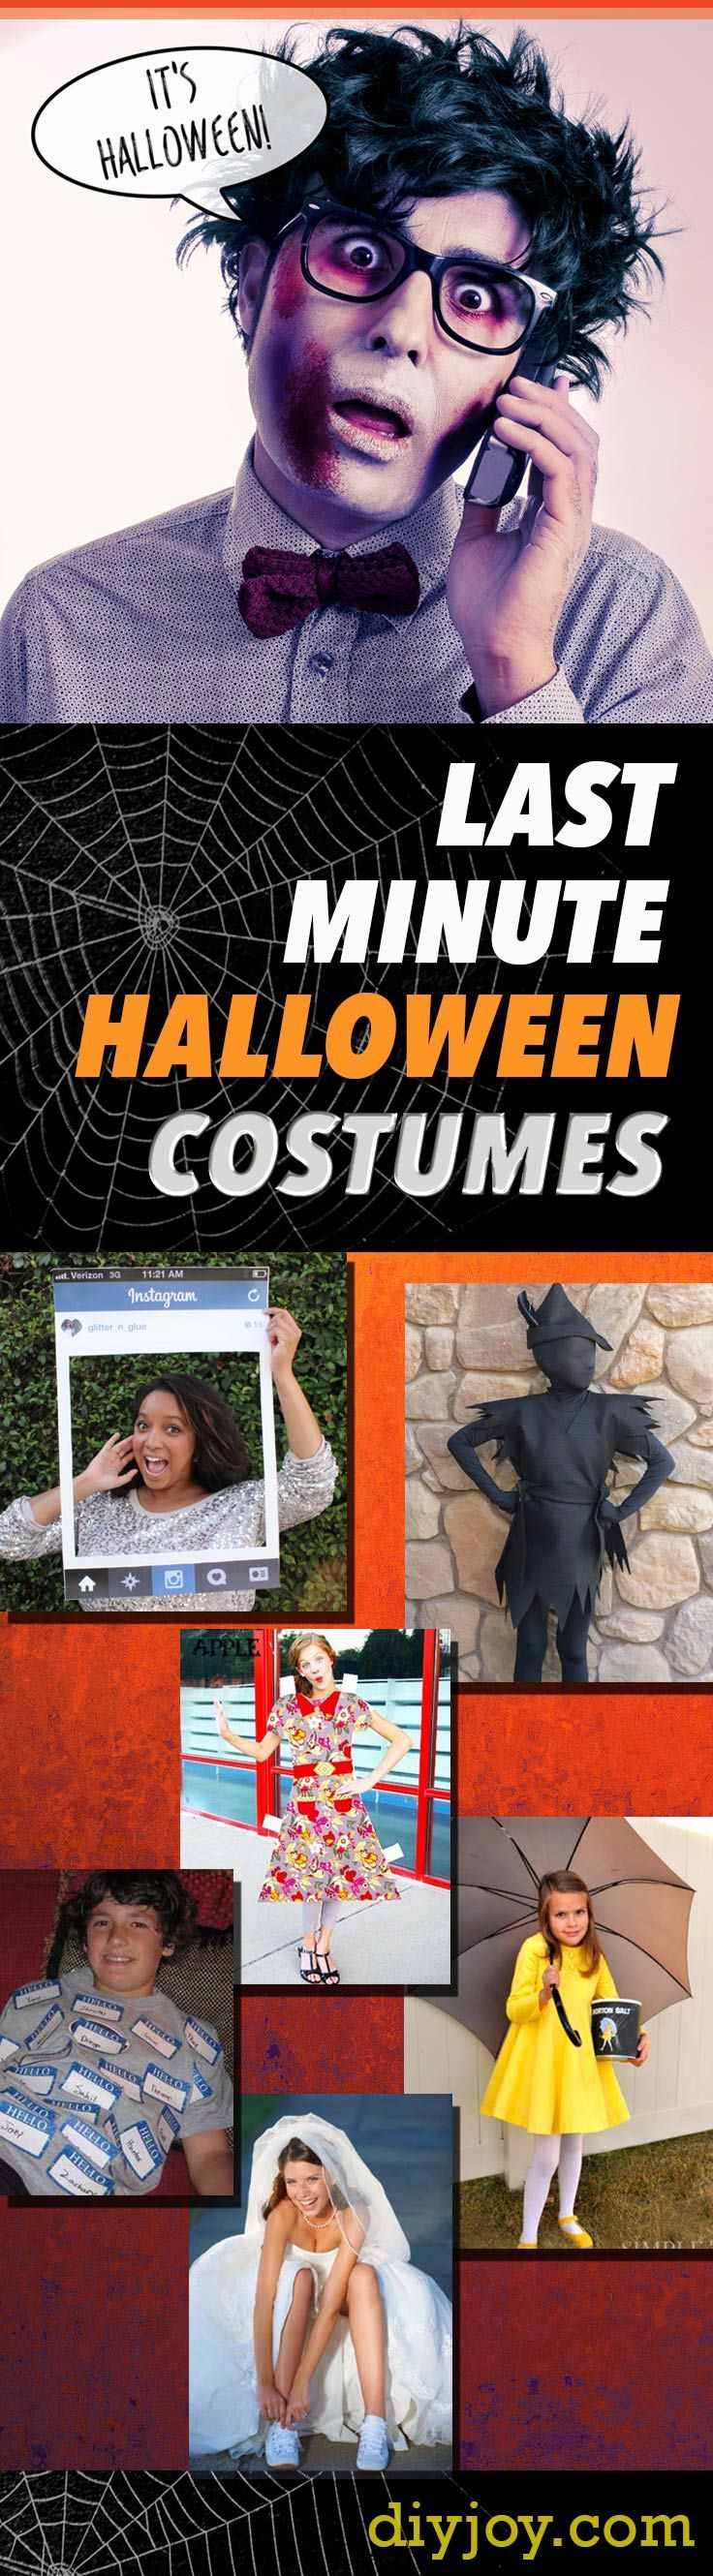 Last Minute Halloween Costumes -Quick Ideas for Couples, Kids, Babies, Men and Women